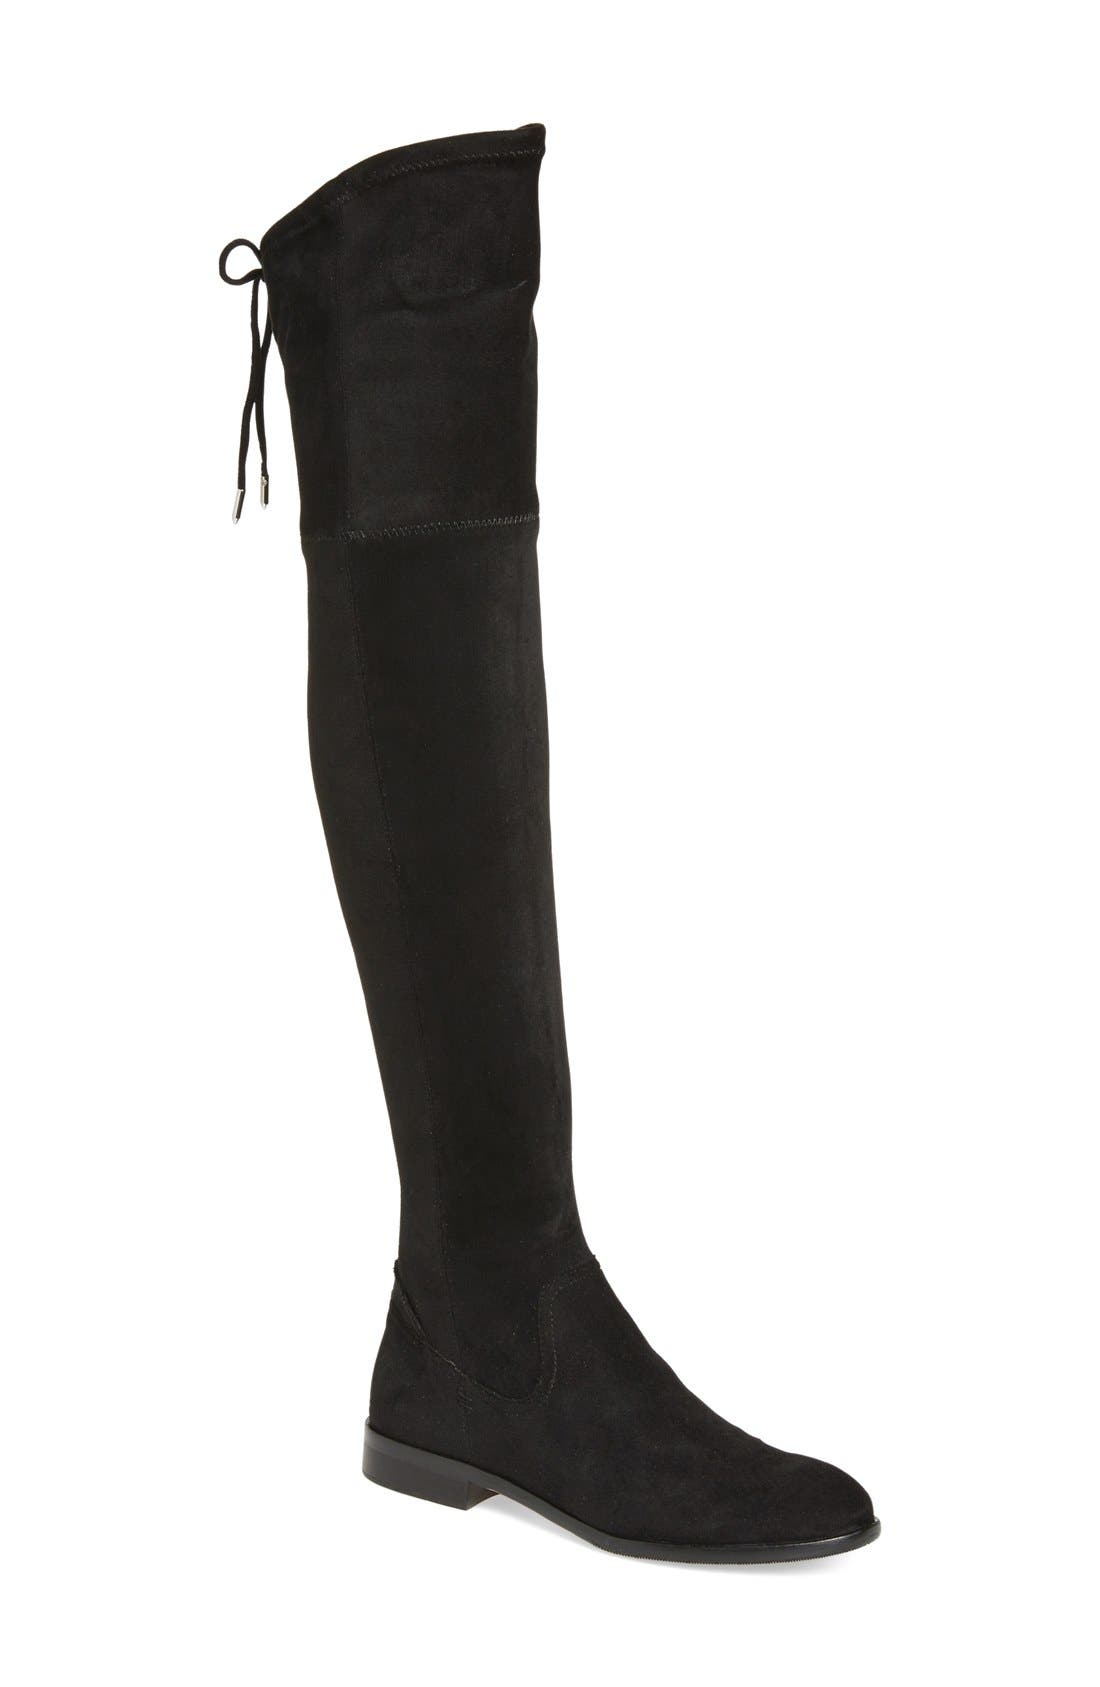 Main Image - Dolce Vita 'Neely' Over the Knee Boot (Women)